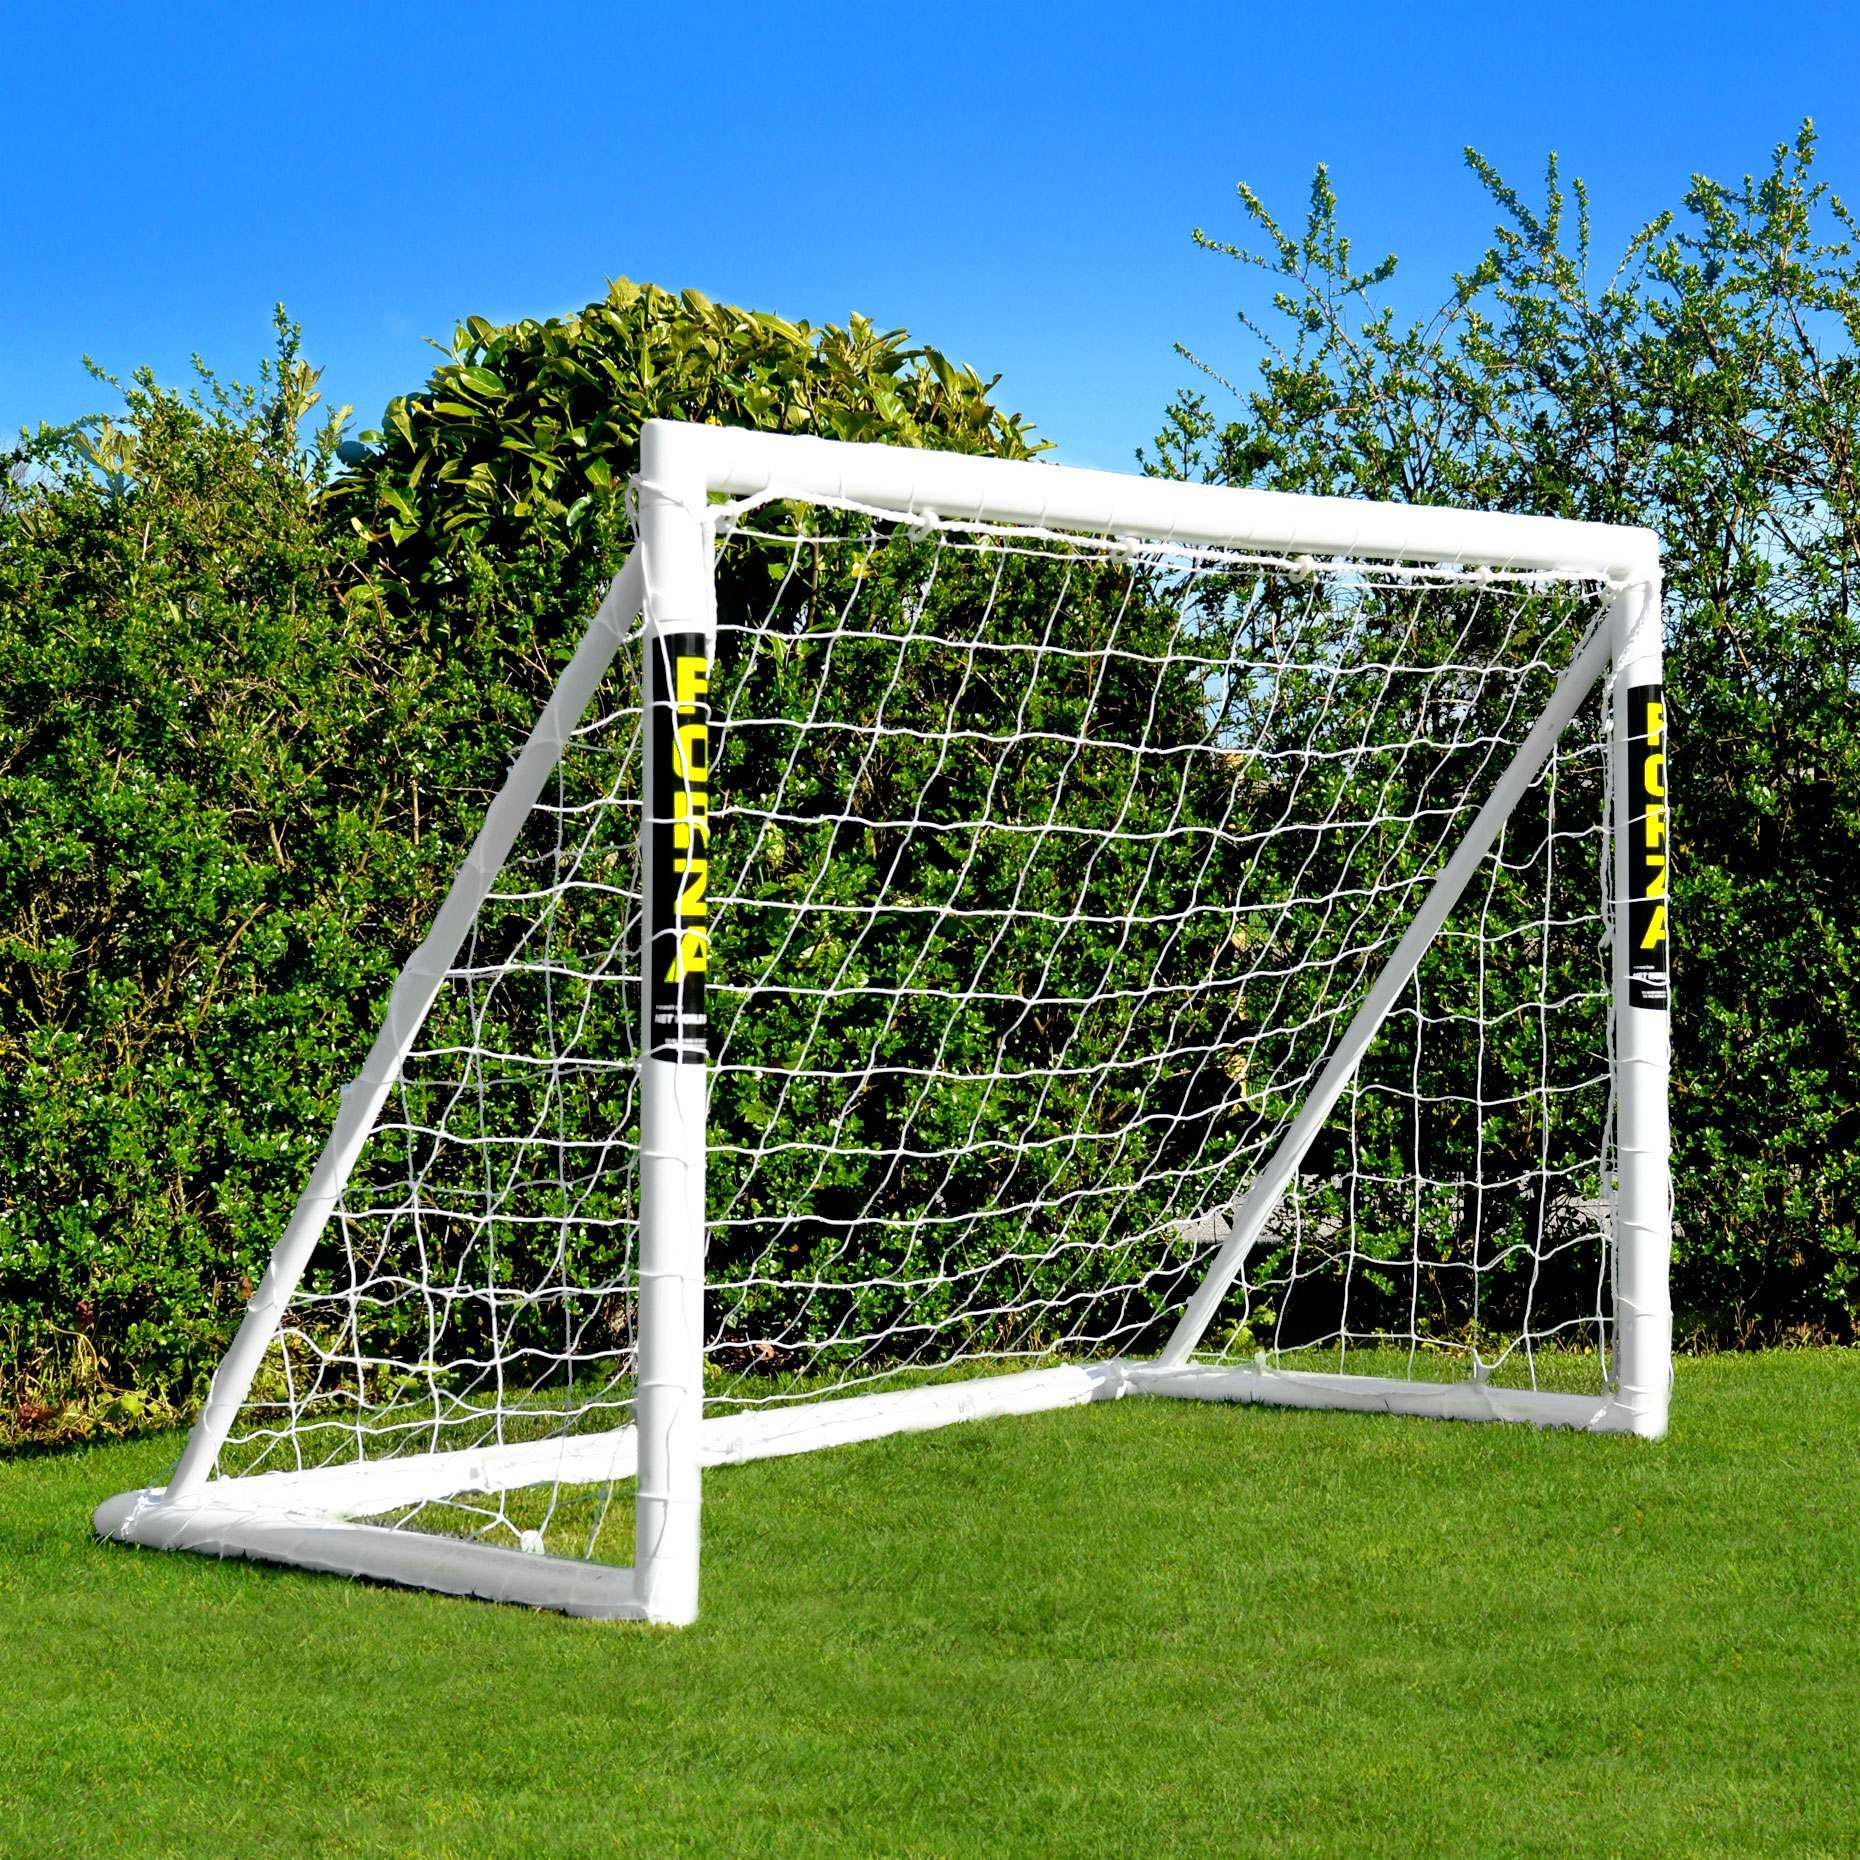 Standard Grade Soccer Goal Net [All Sizes]